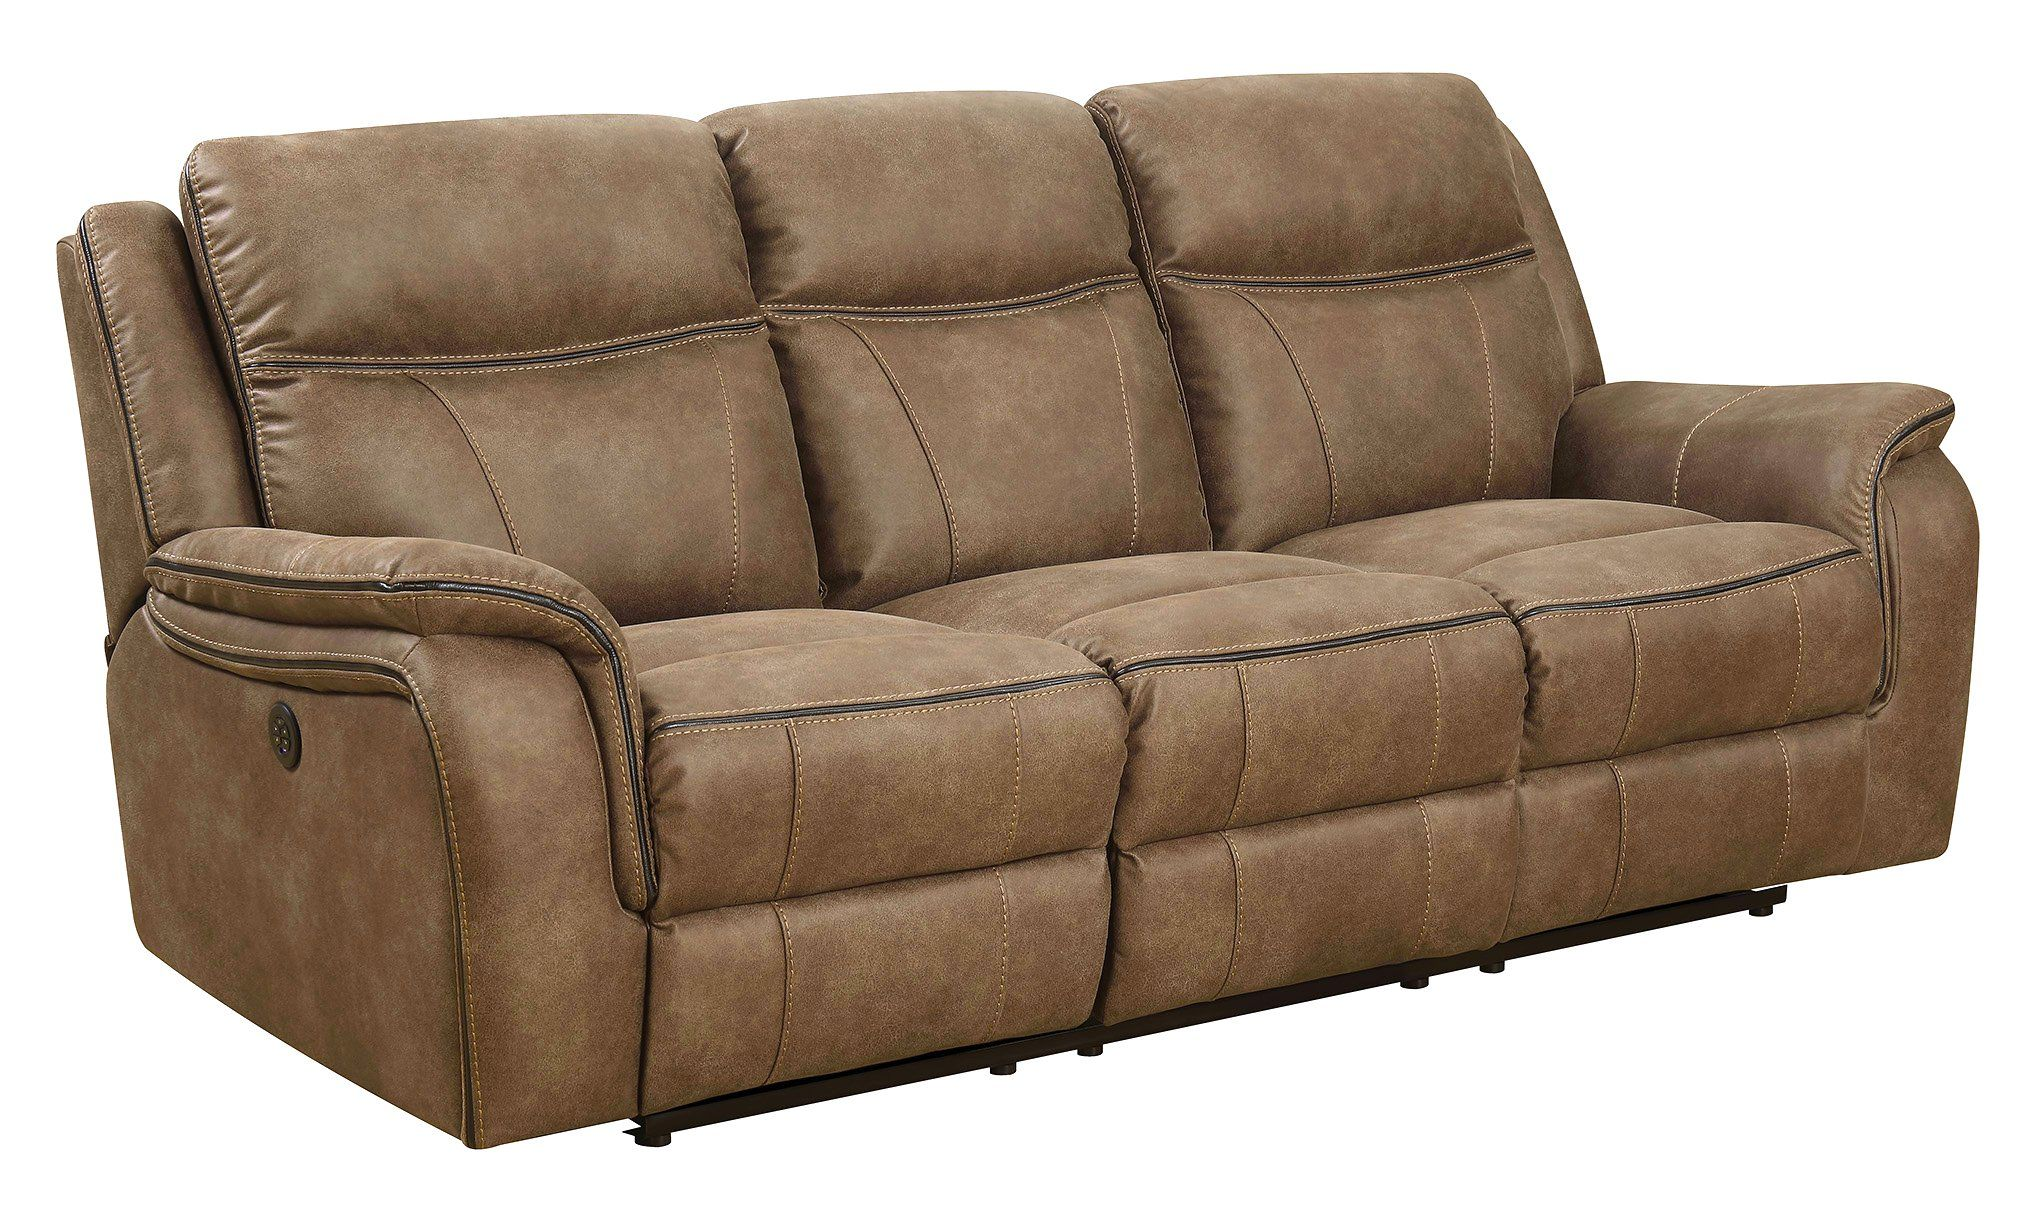 classic covers features represent may not width sofa products height shown reclining threshold dual trim indicated pbk recliner